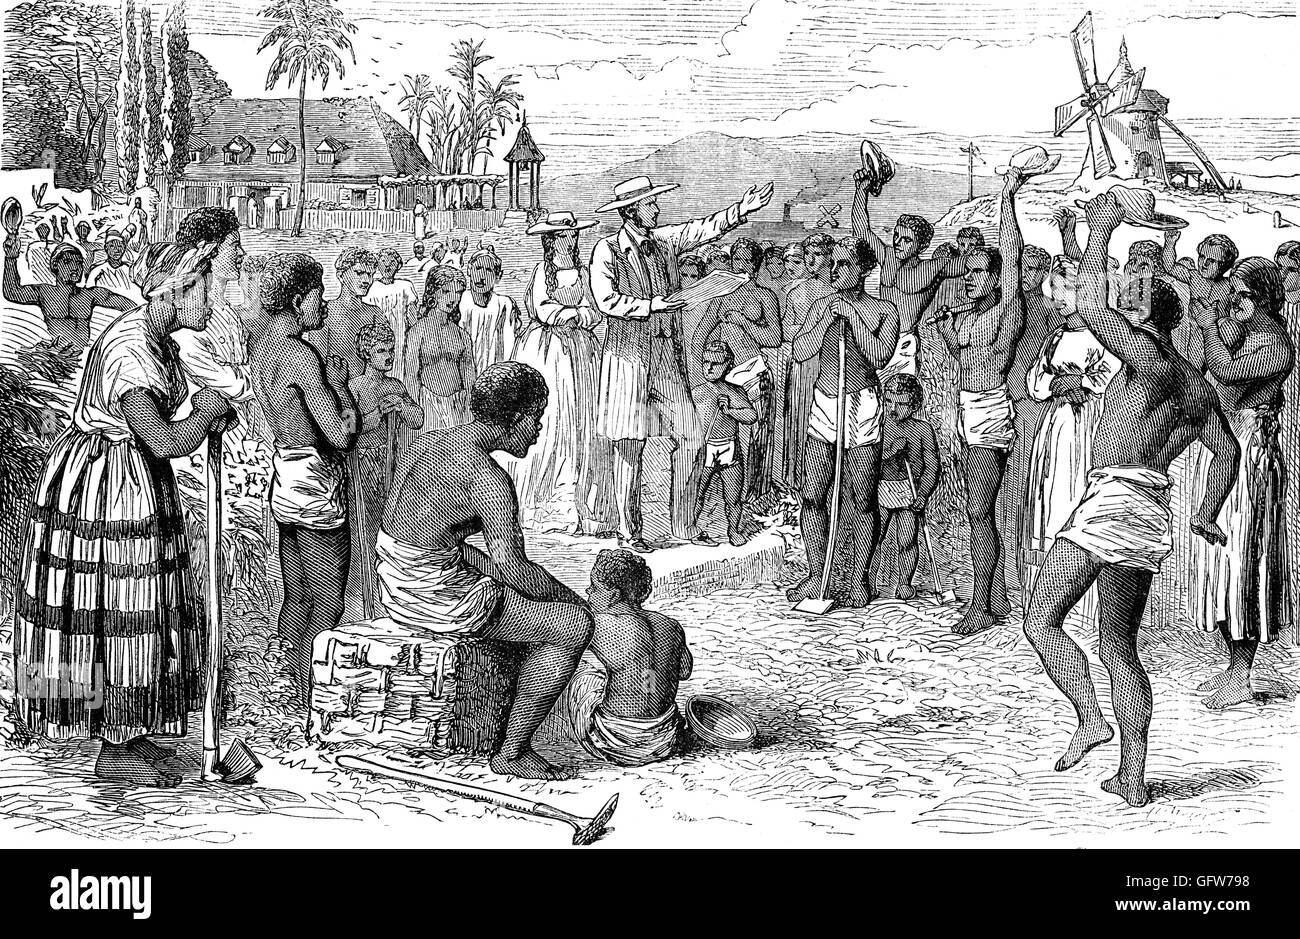 Following The Abolition Of Slavery In The British Empire